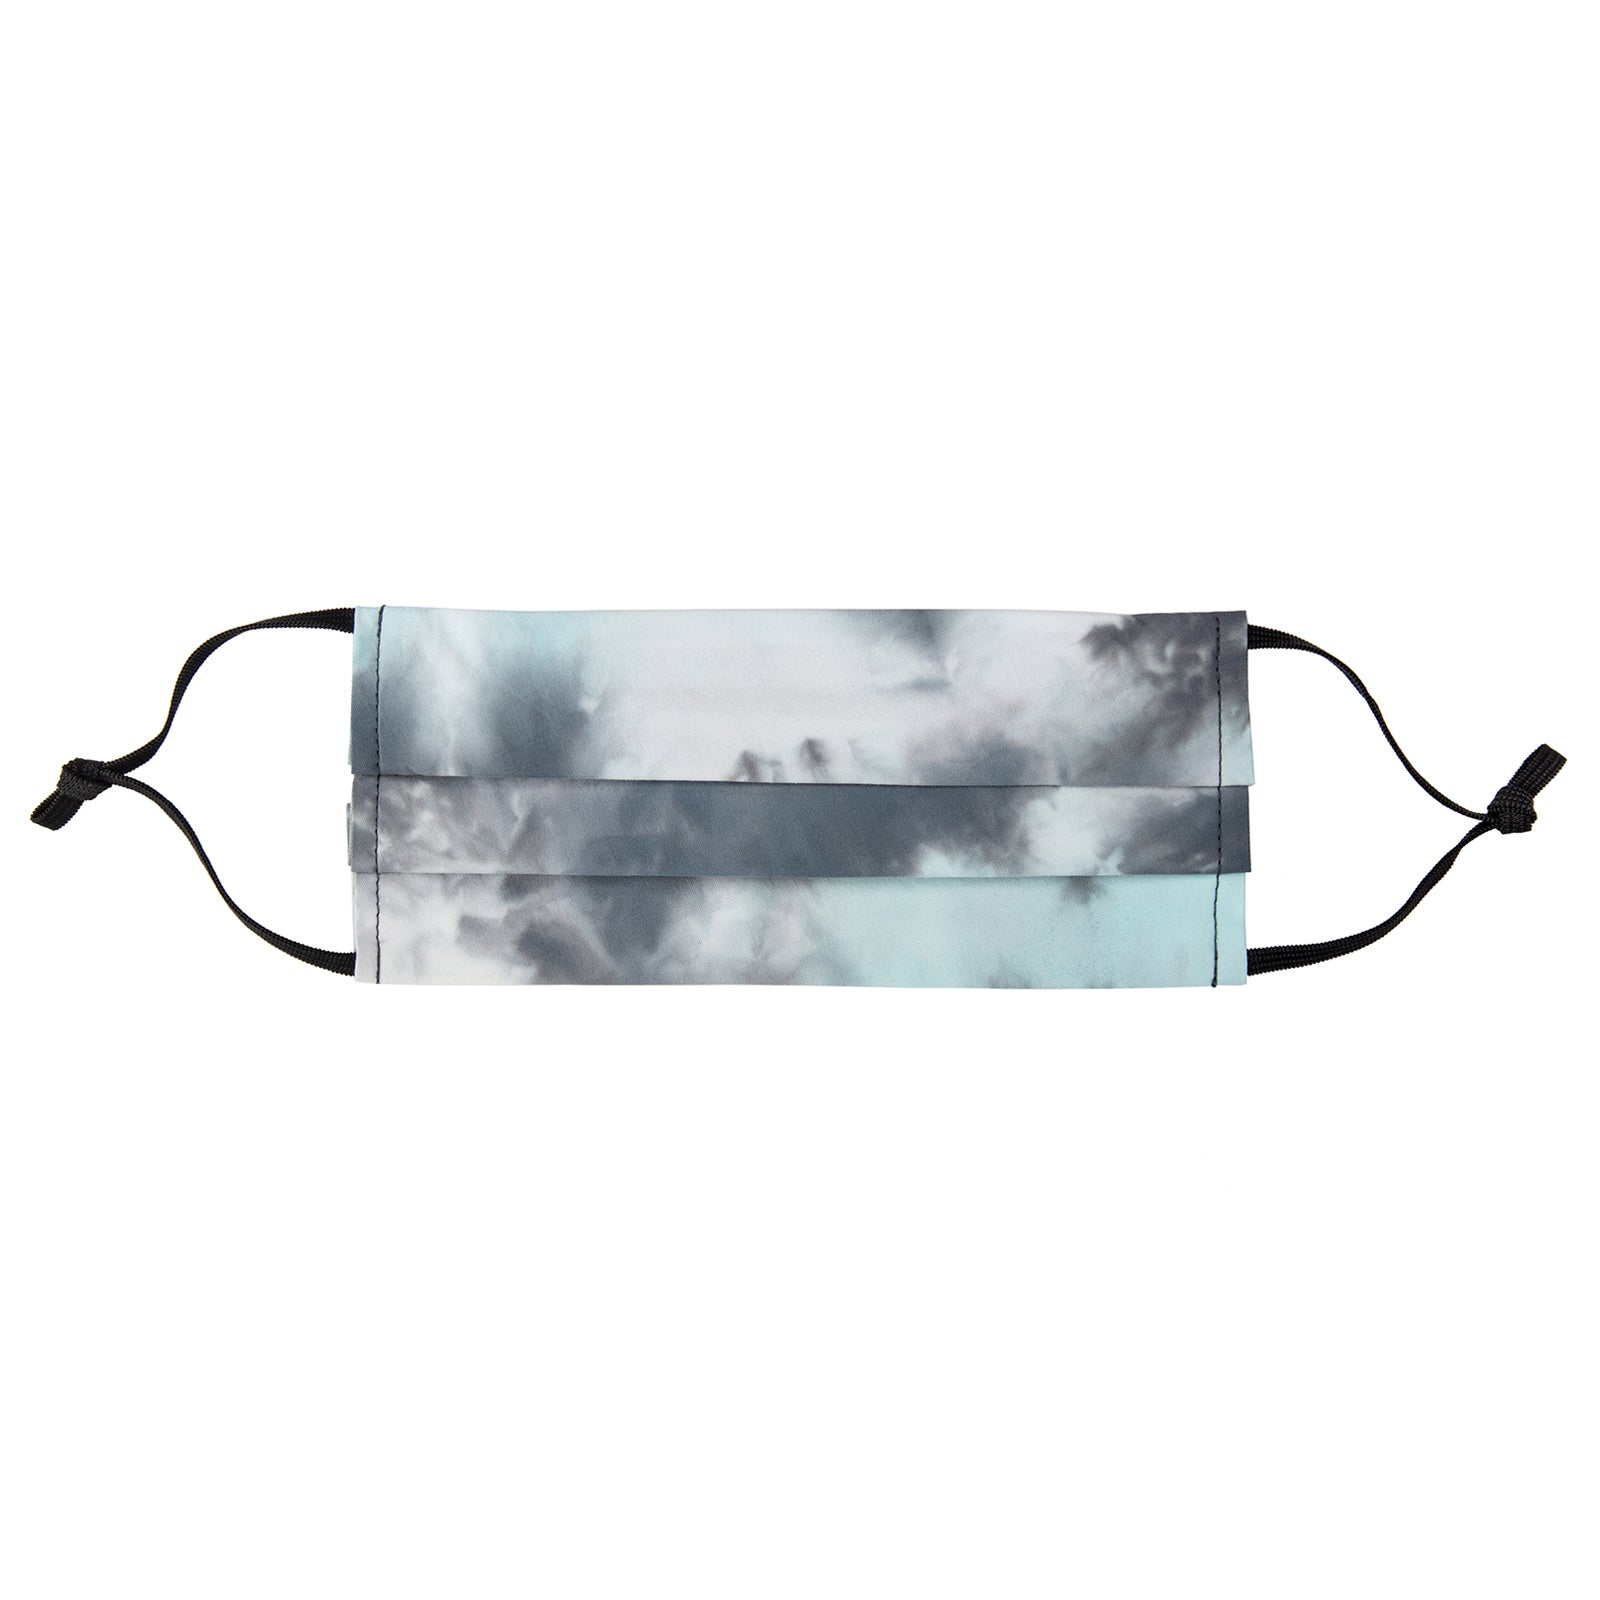 Fraction LA Tie Dye Face Mask - Black & Color - Accessories - Broken English Jewelry